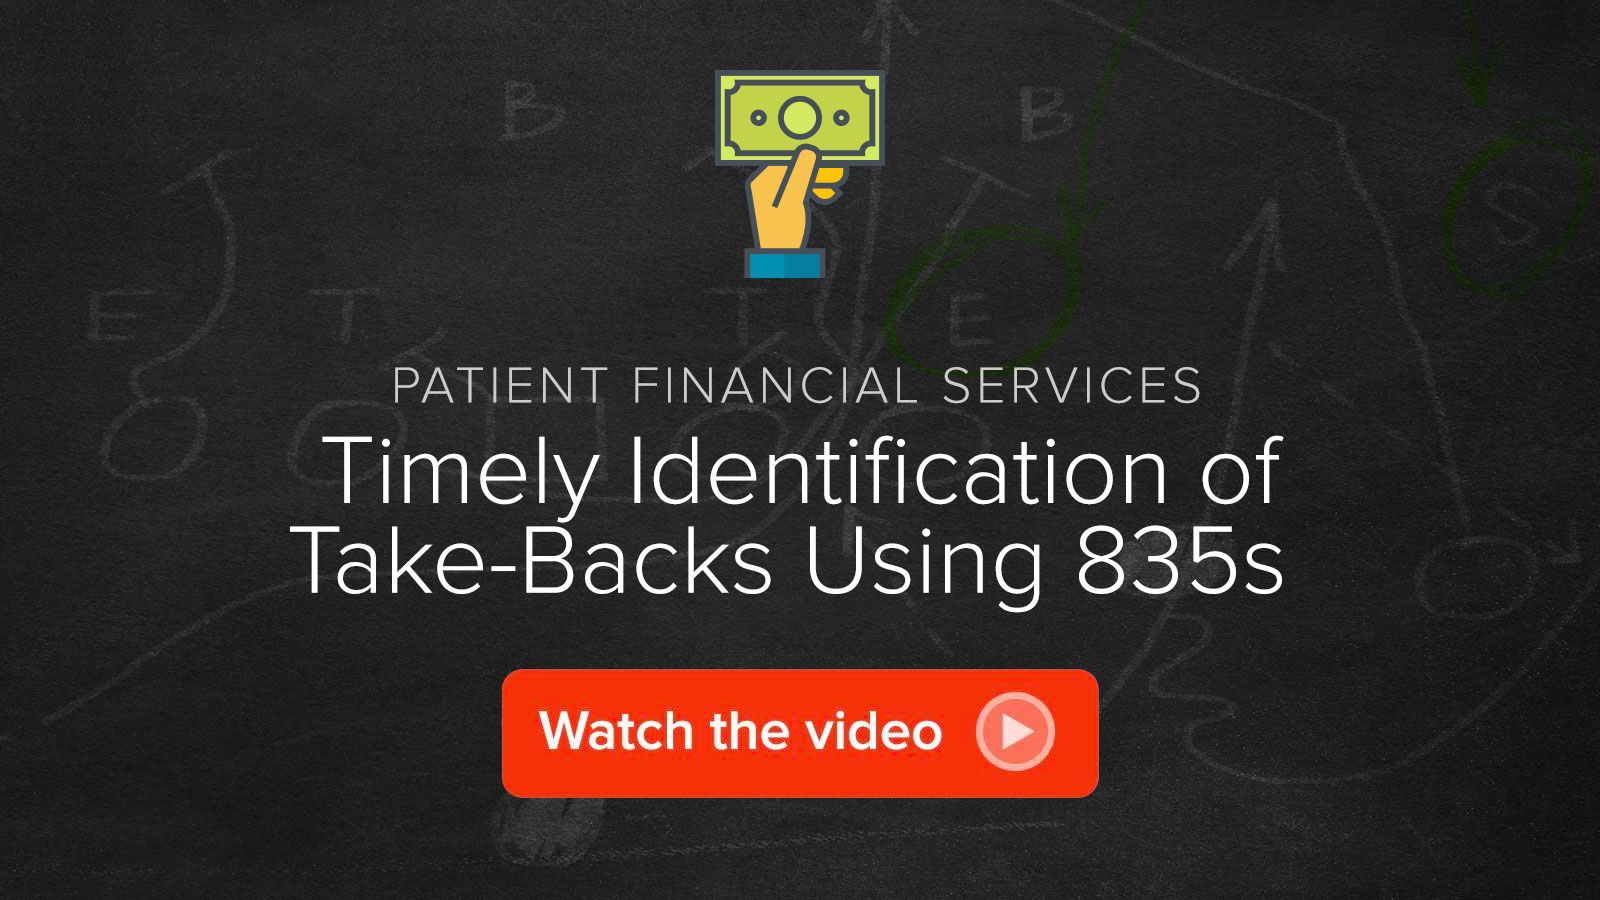 Watch the Timely Identification of Take-Backs Using 835s video